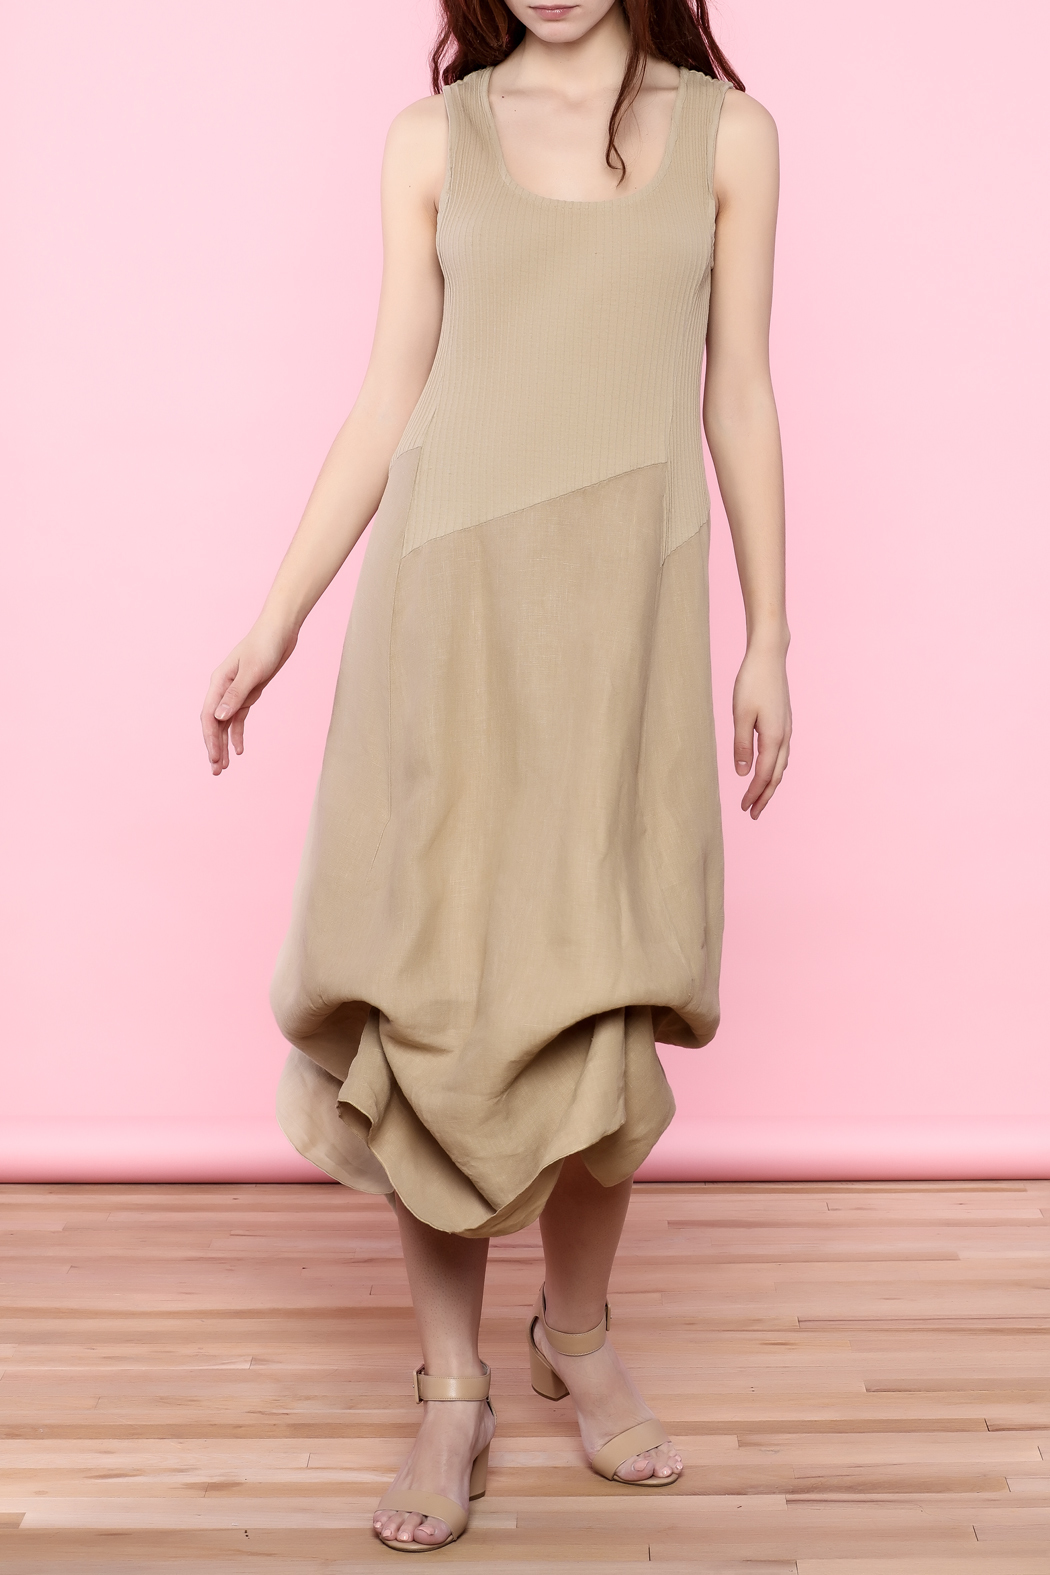 Scarborough Fair Beige Linen Dress - Main Image